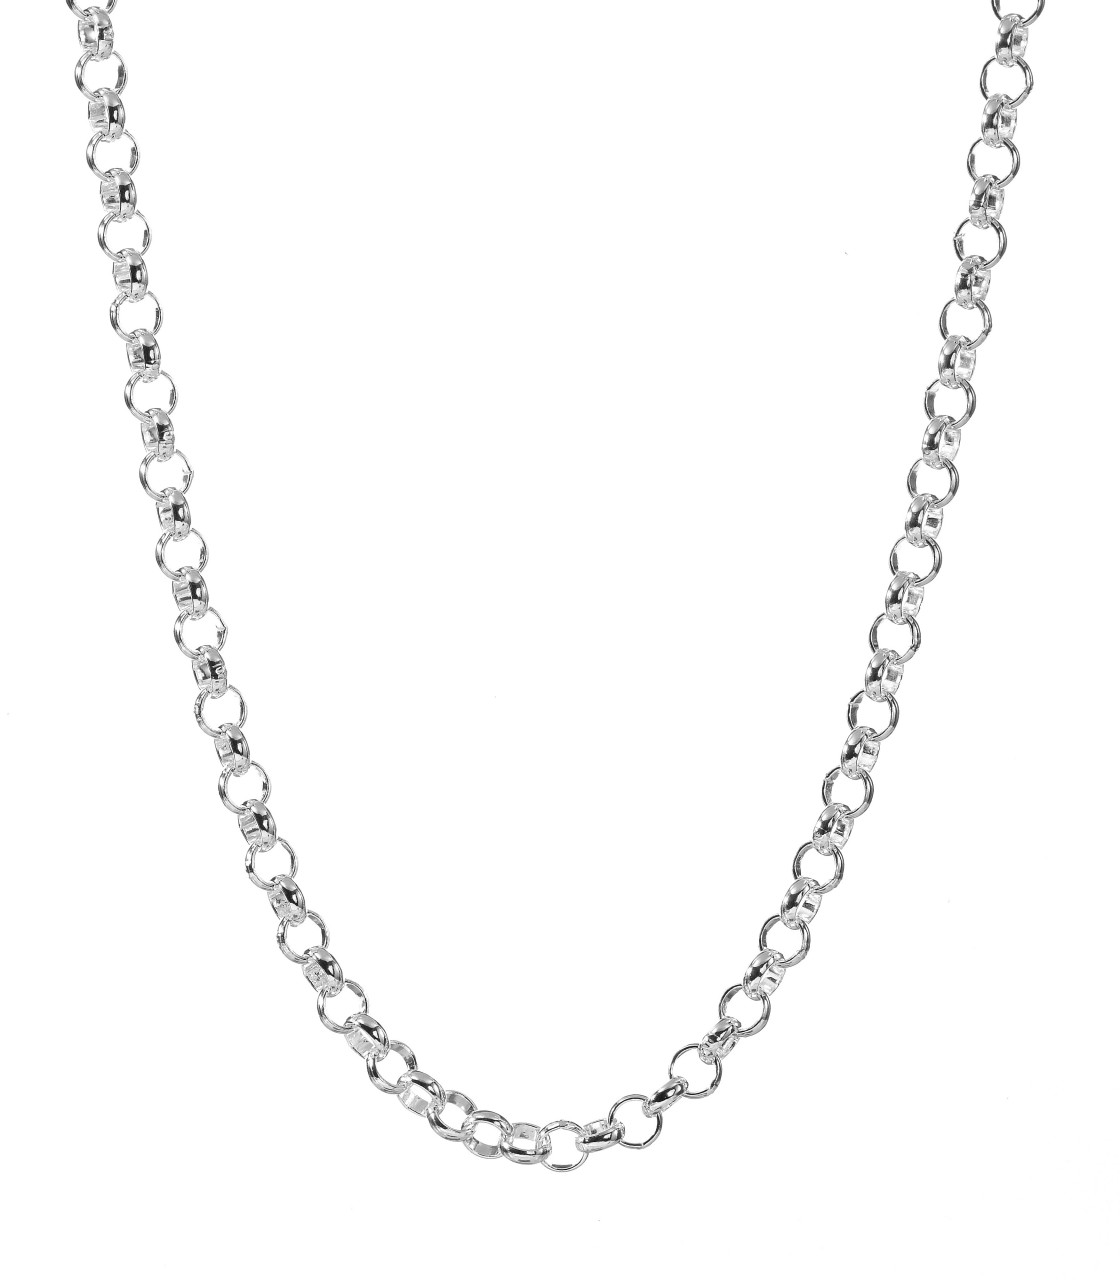 Simple Silver Necklace Chain Necklace Chain Png Preciousjewelrypicture  Awesome - Chain HD PNG